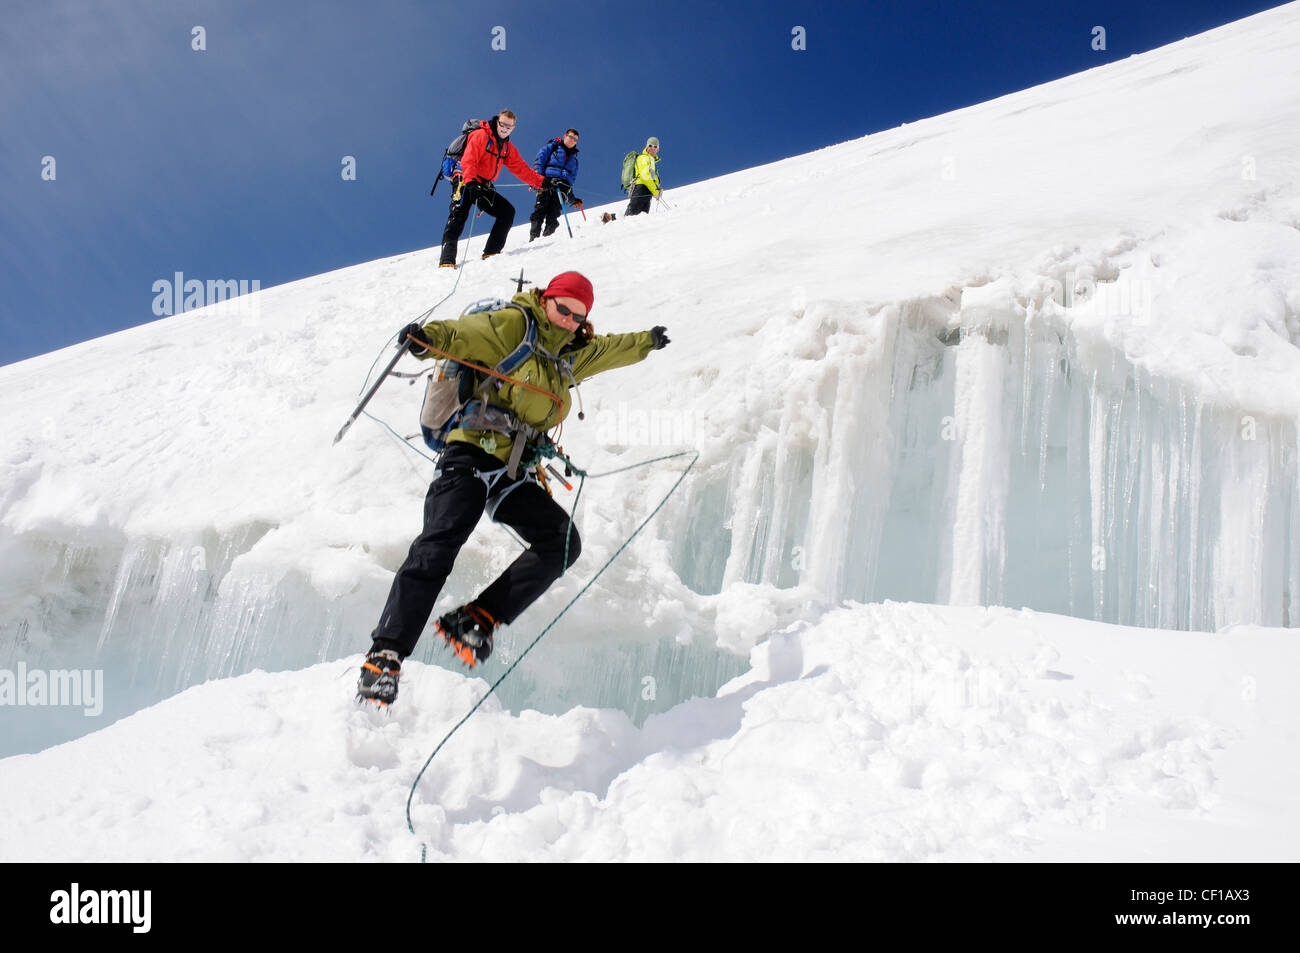 A lady climber leaping a large crevasse on the traverse on Monte Rosa in Switzerland - Stock Image